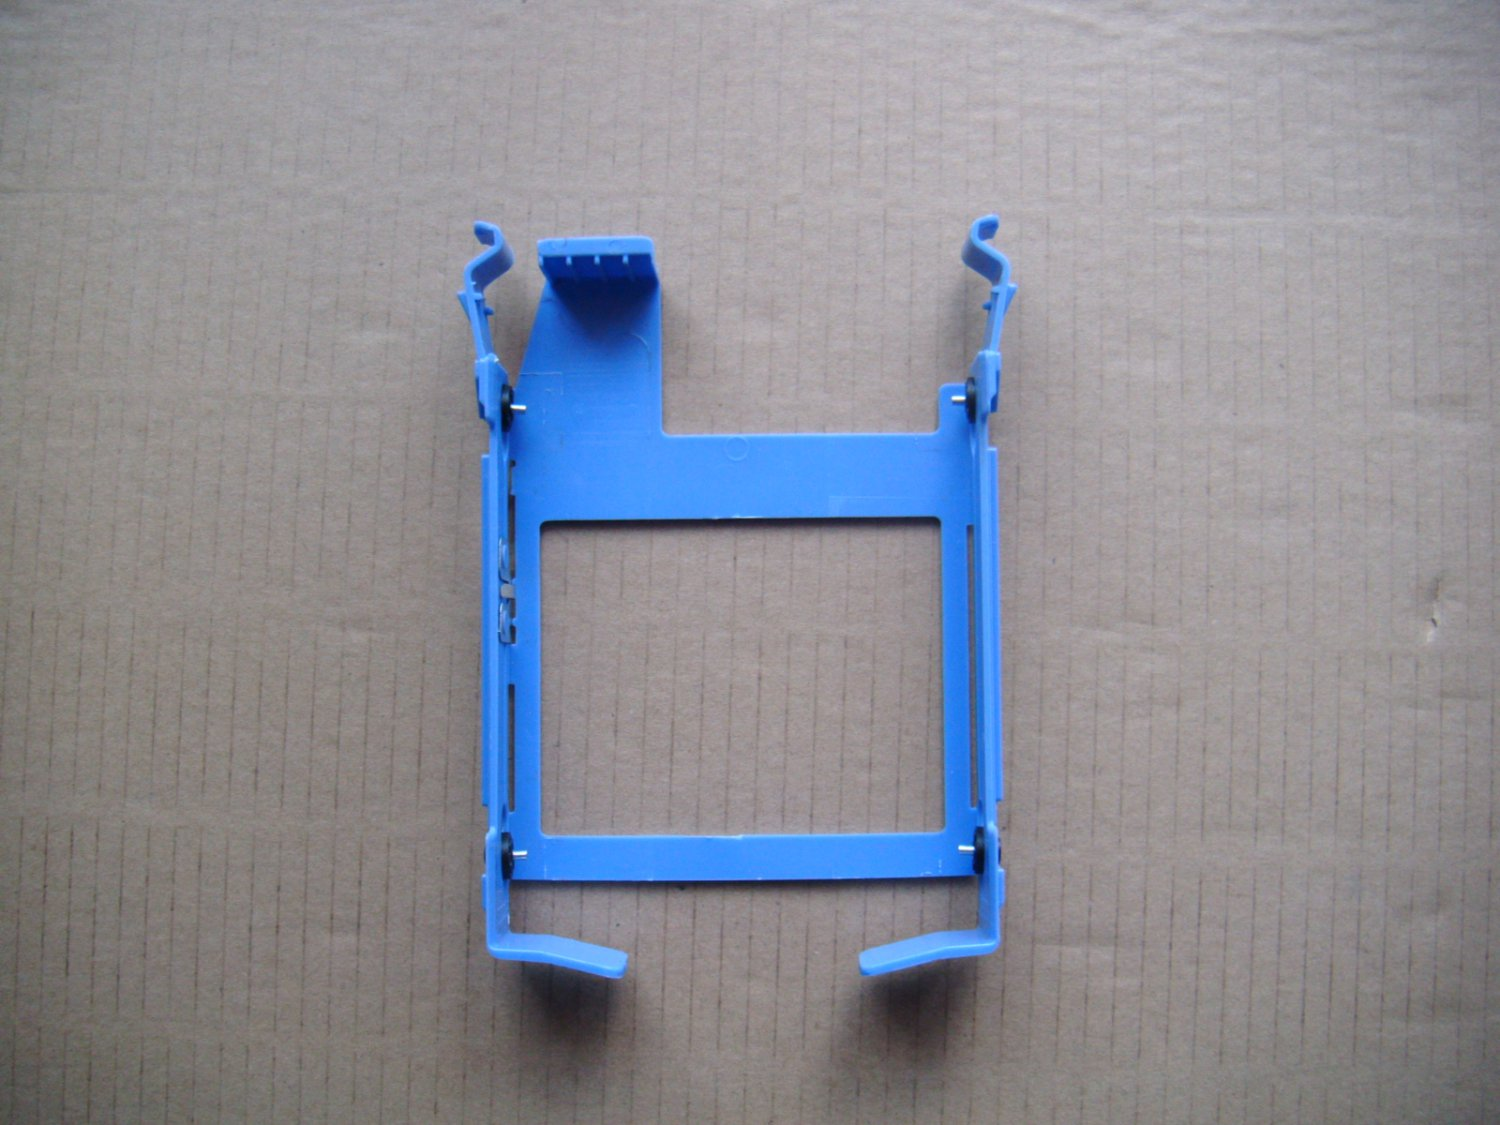 Dell 390 790 990 SFF MT 2.5 3.5 HDD Hard Drive Caddy Bracket 1B31D2600 px60023 dn8my